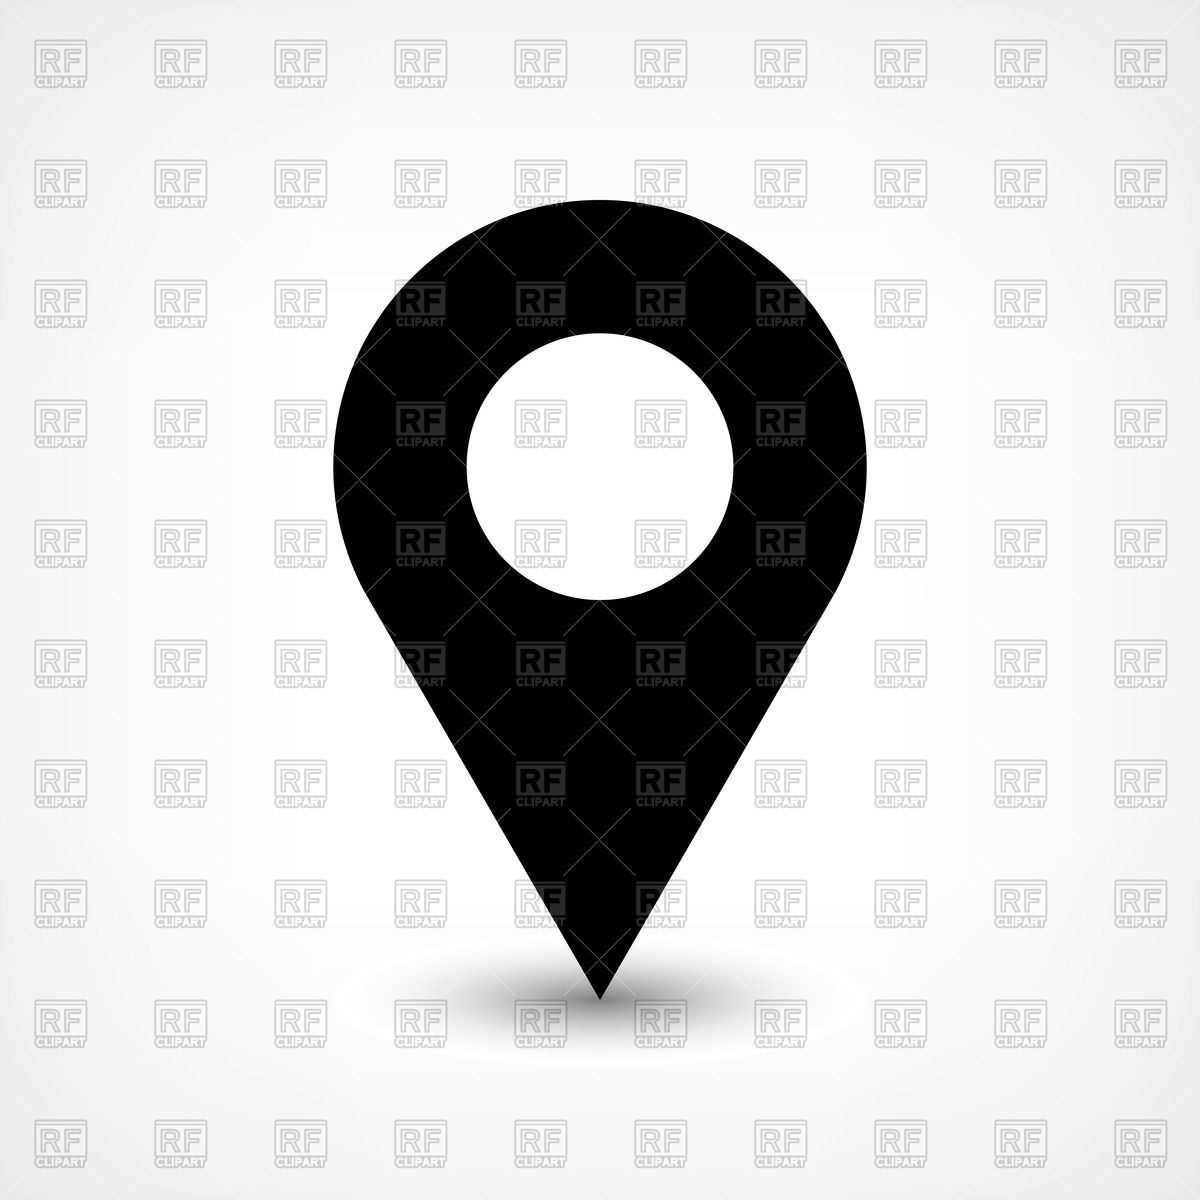 Round black map pin icon Vector Image #50419.